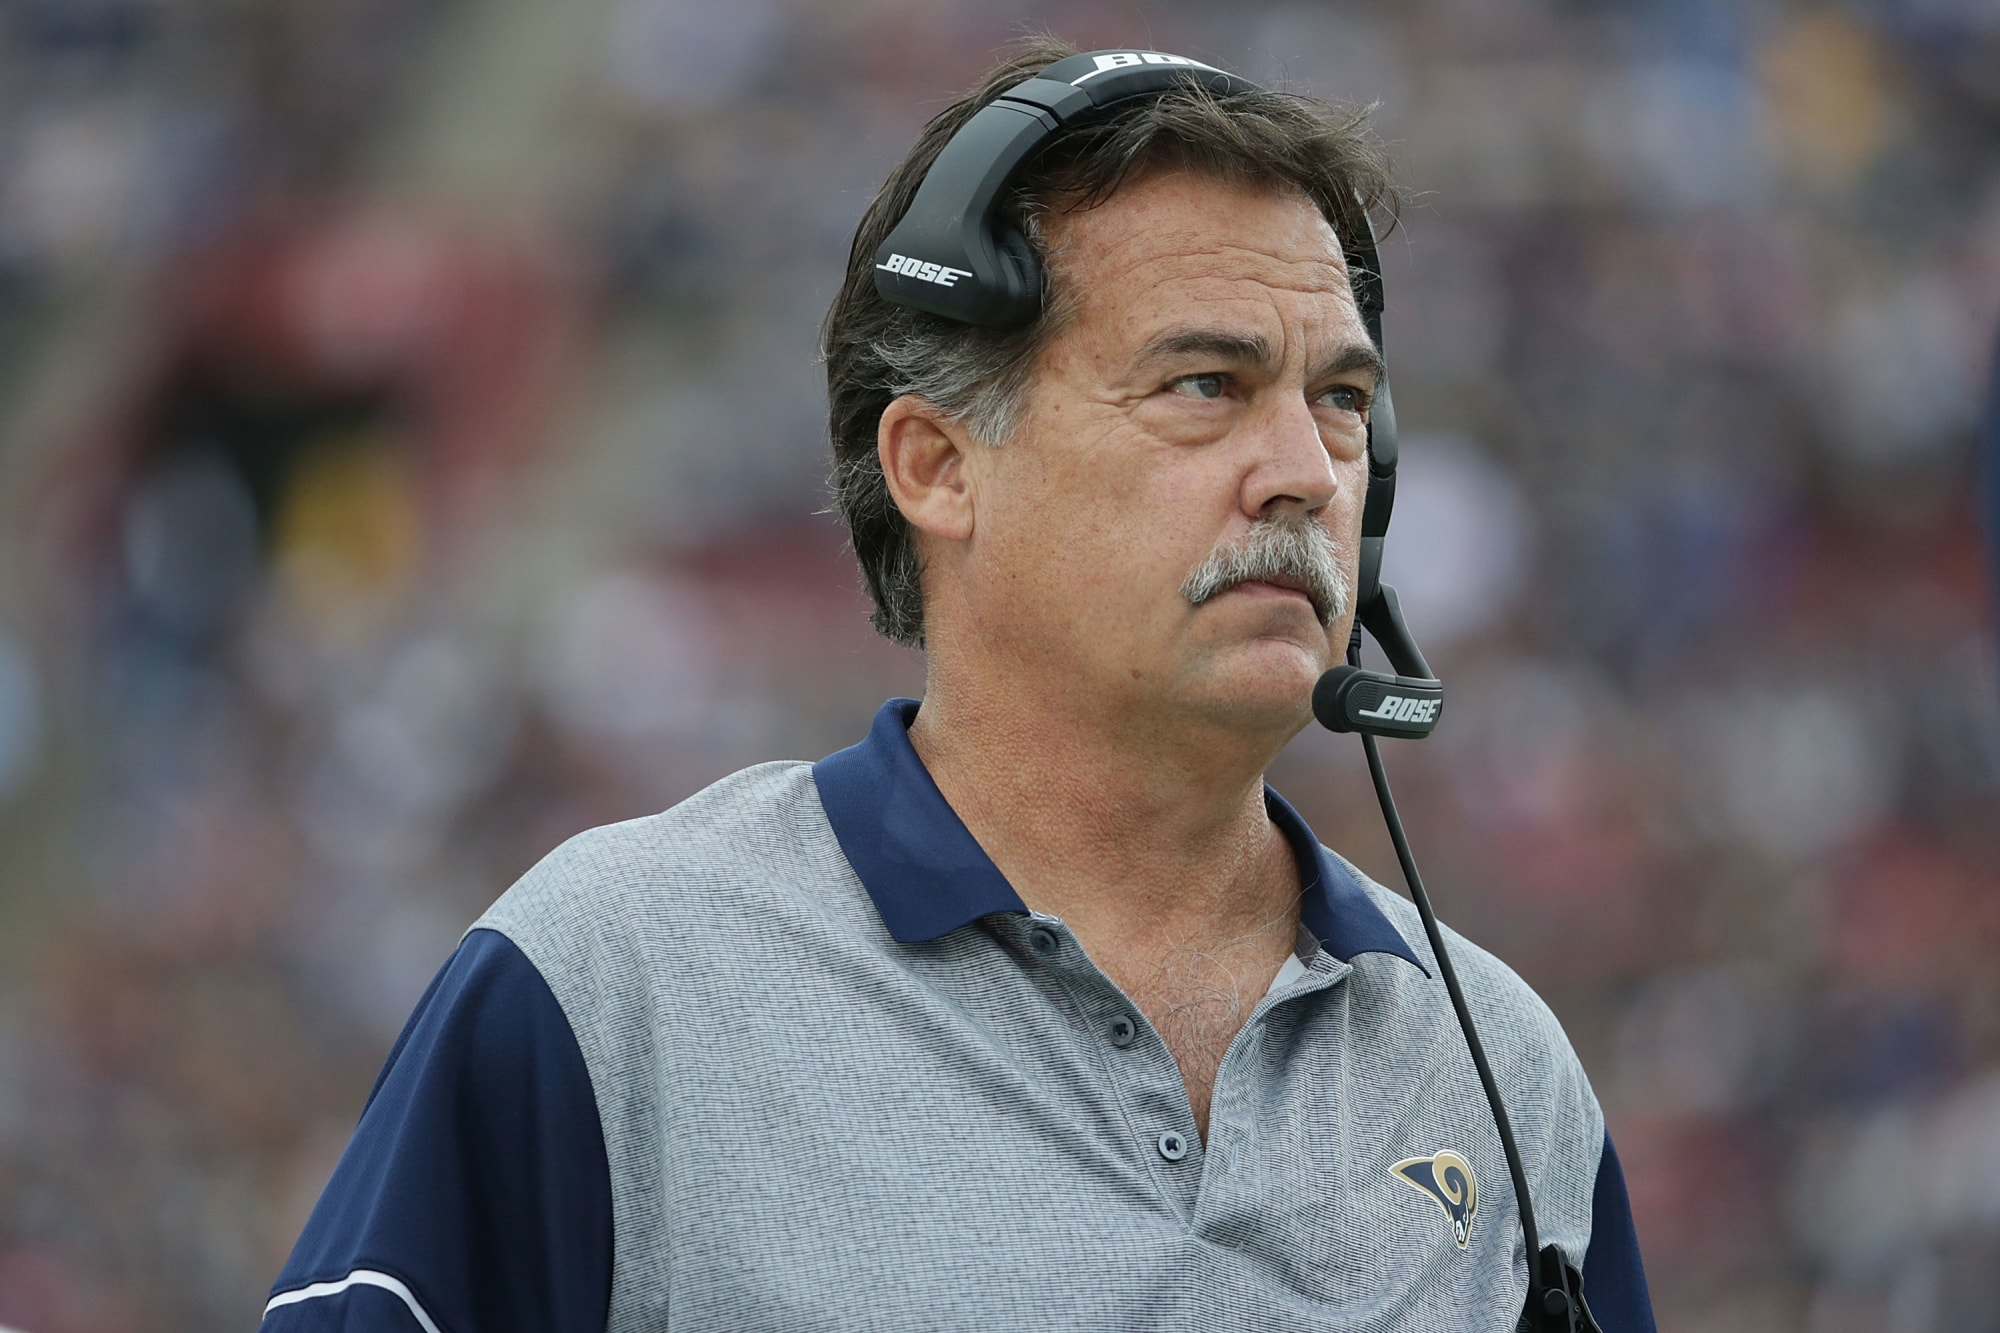 Tennessee football: Jeff Fisher has interest in Vols job if Jeremy Pruitt is fired thumbnail